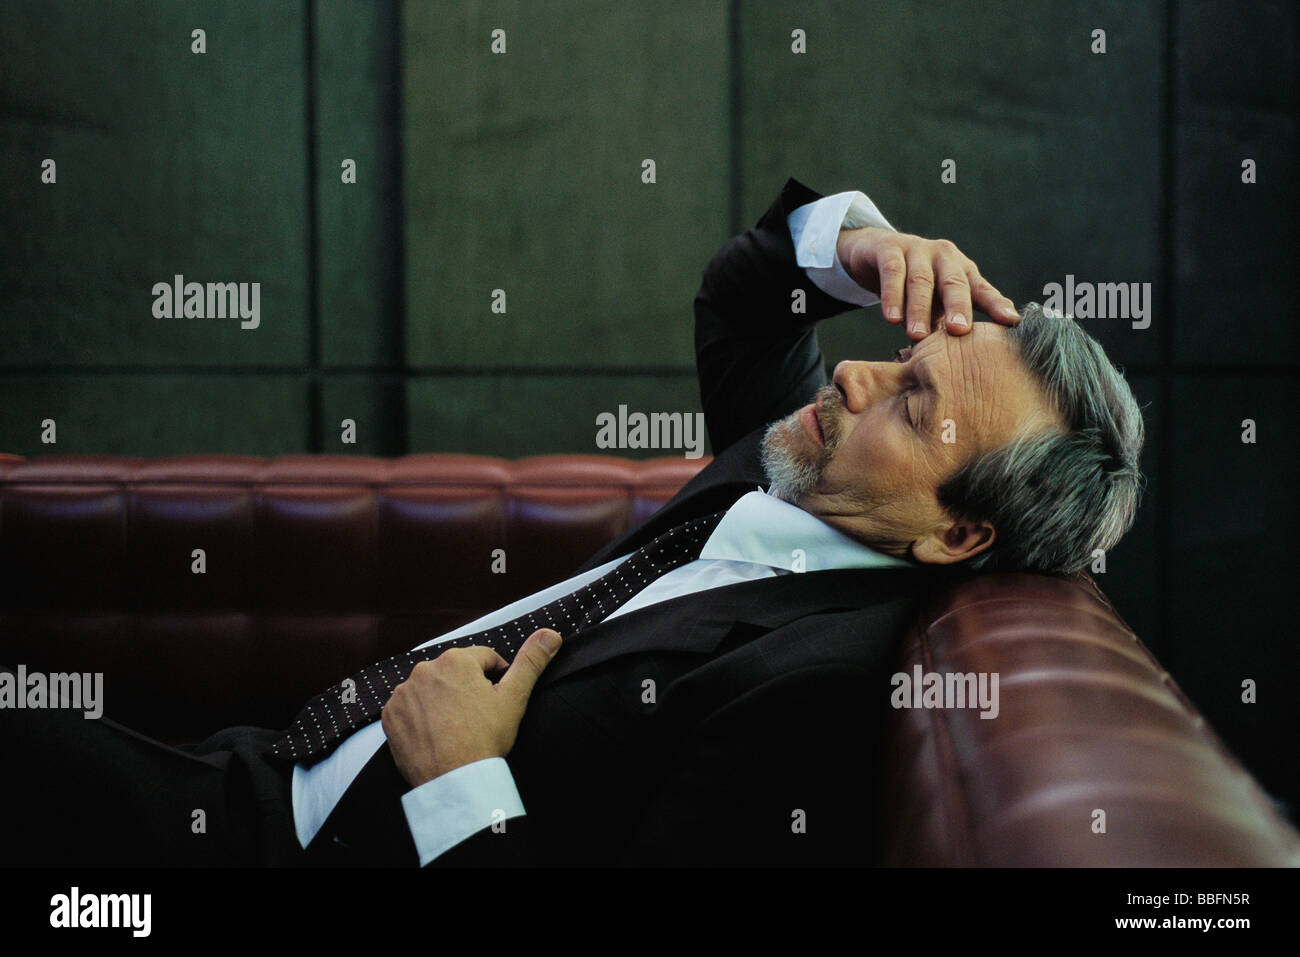 Businessman reclining on couch, hand on head, eyes closed - Stock Image